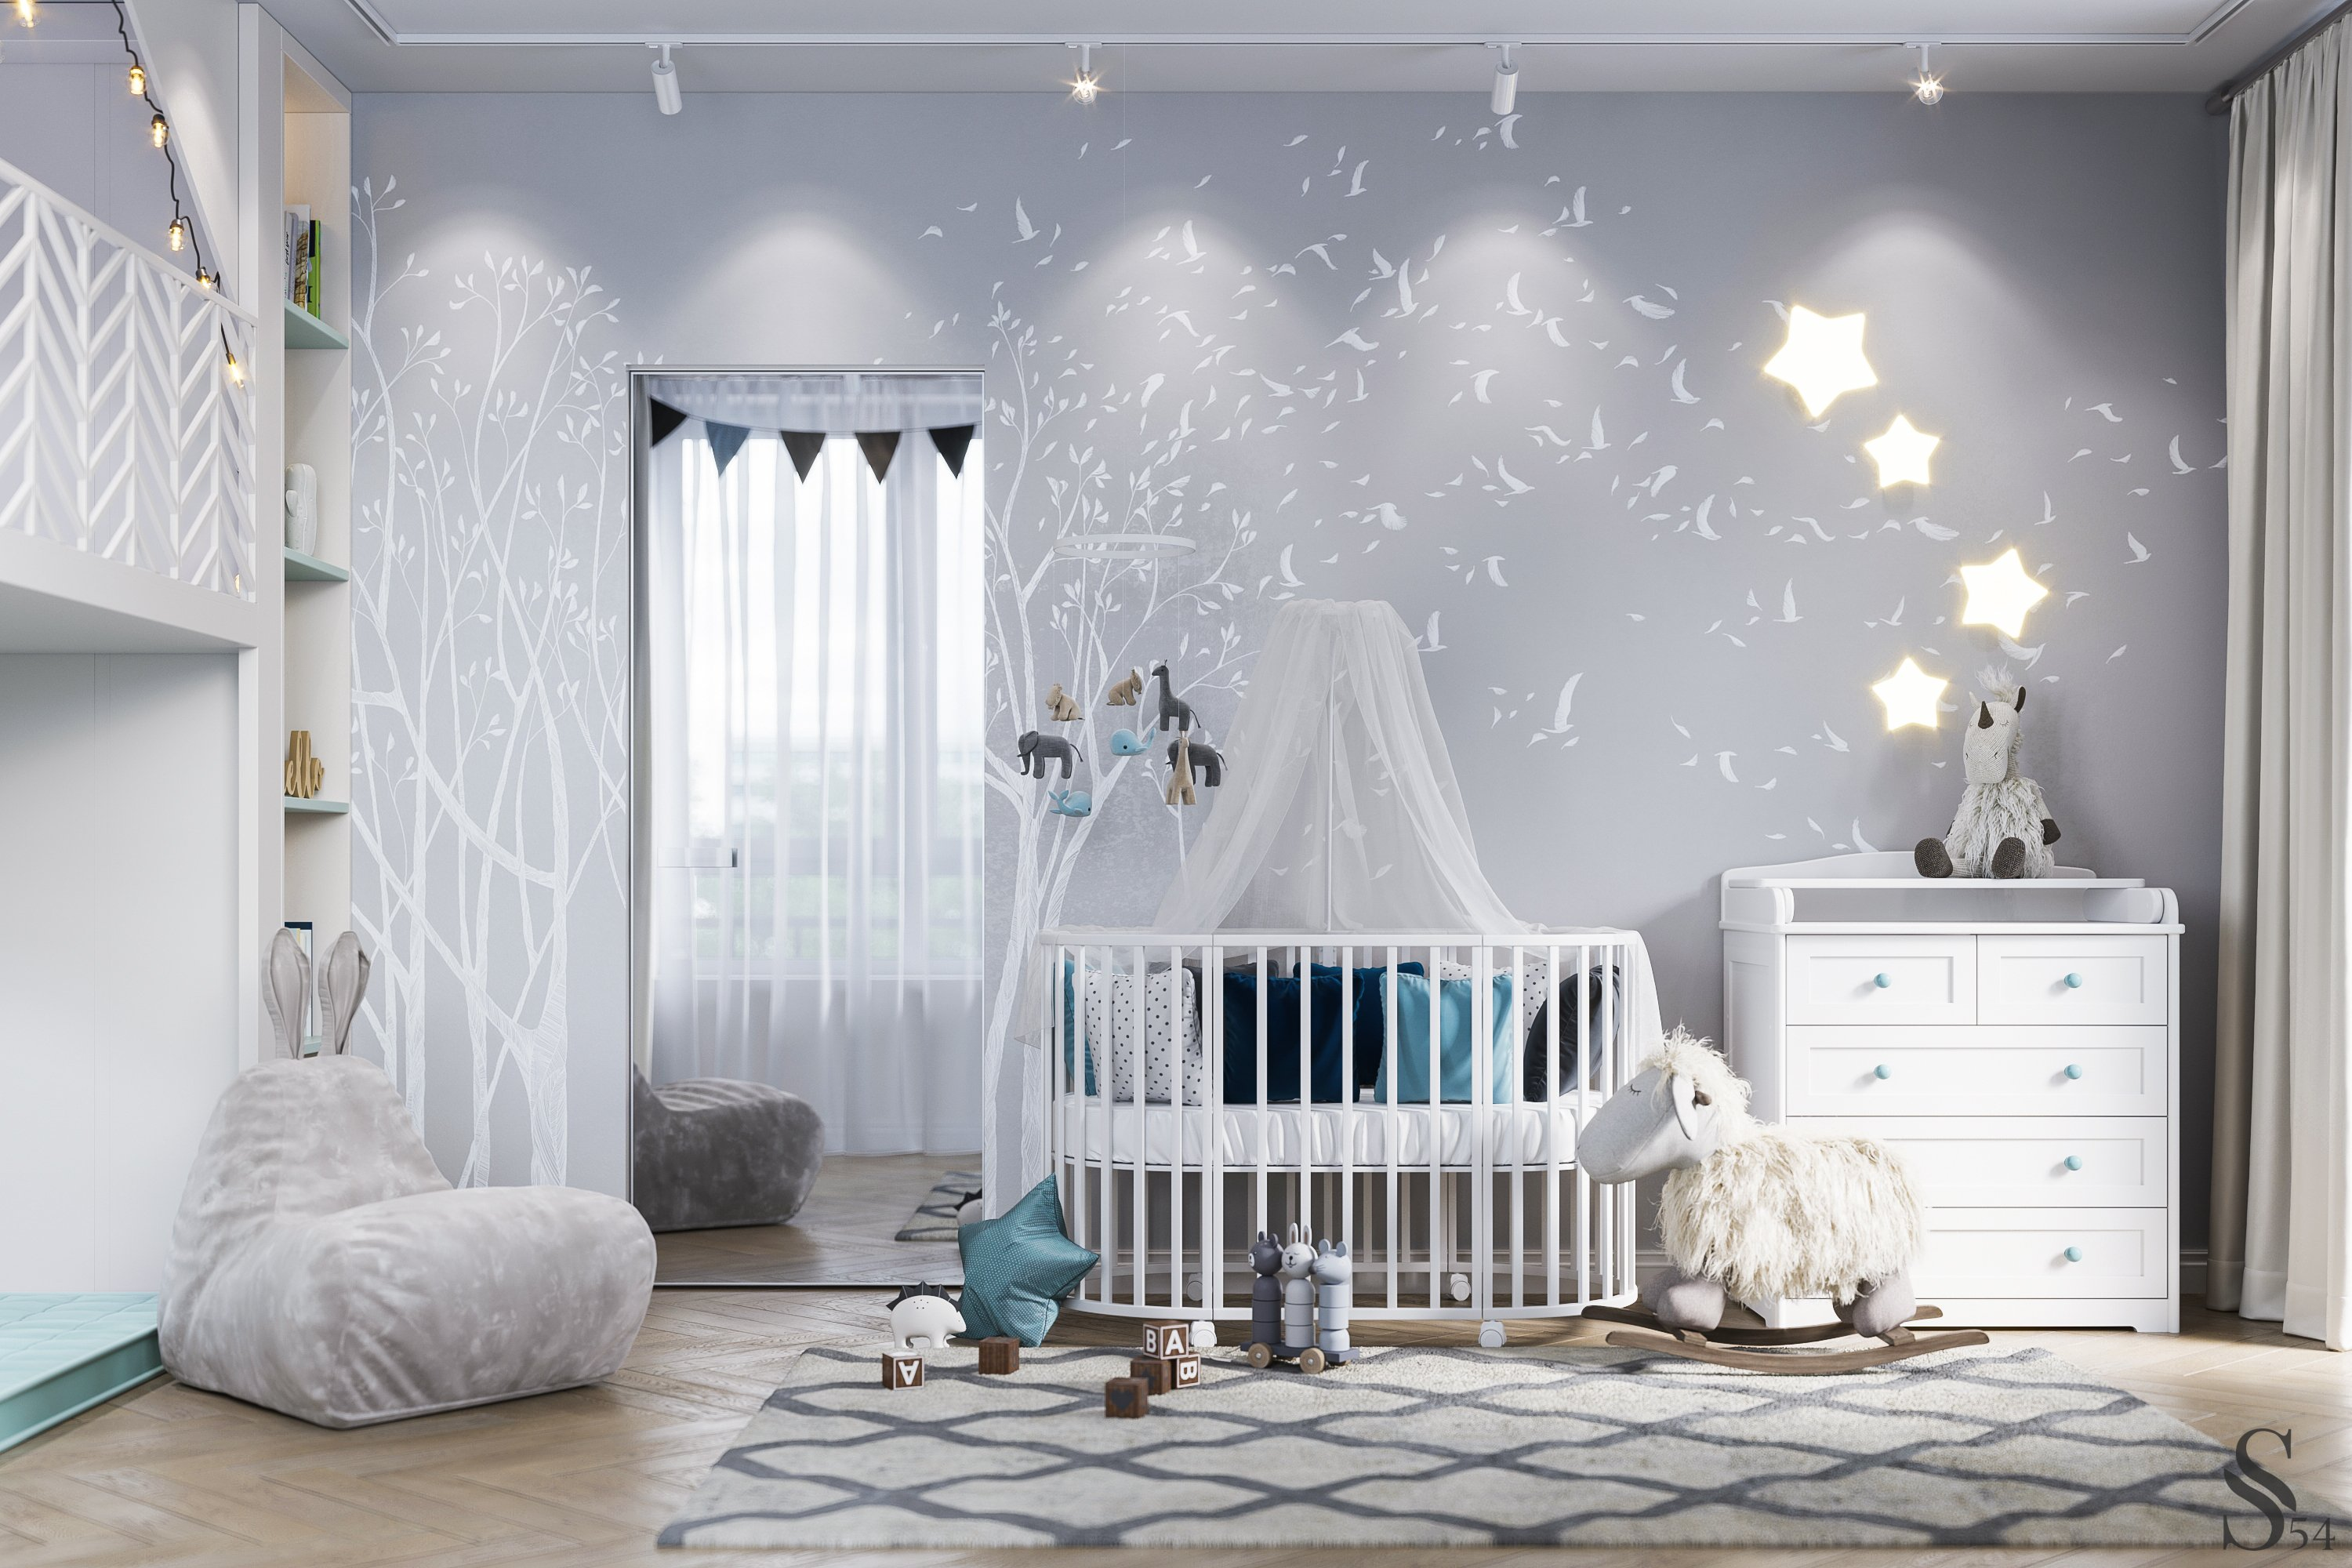 Children_room_01_004_nologo.jpg